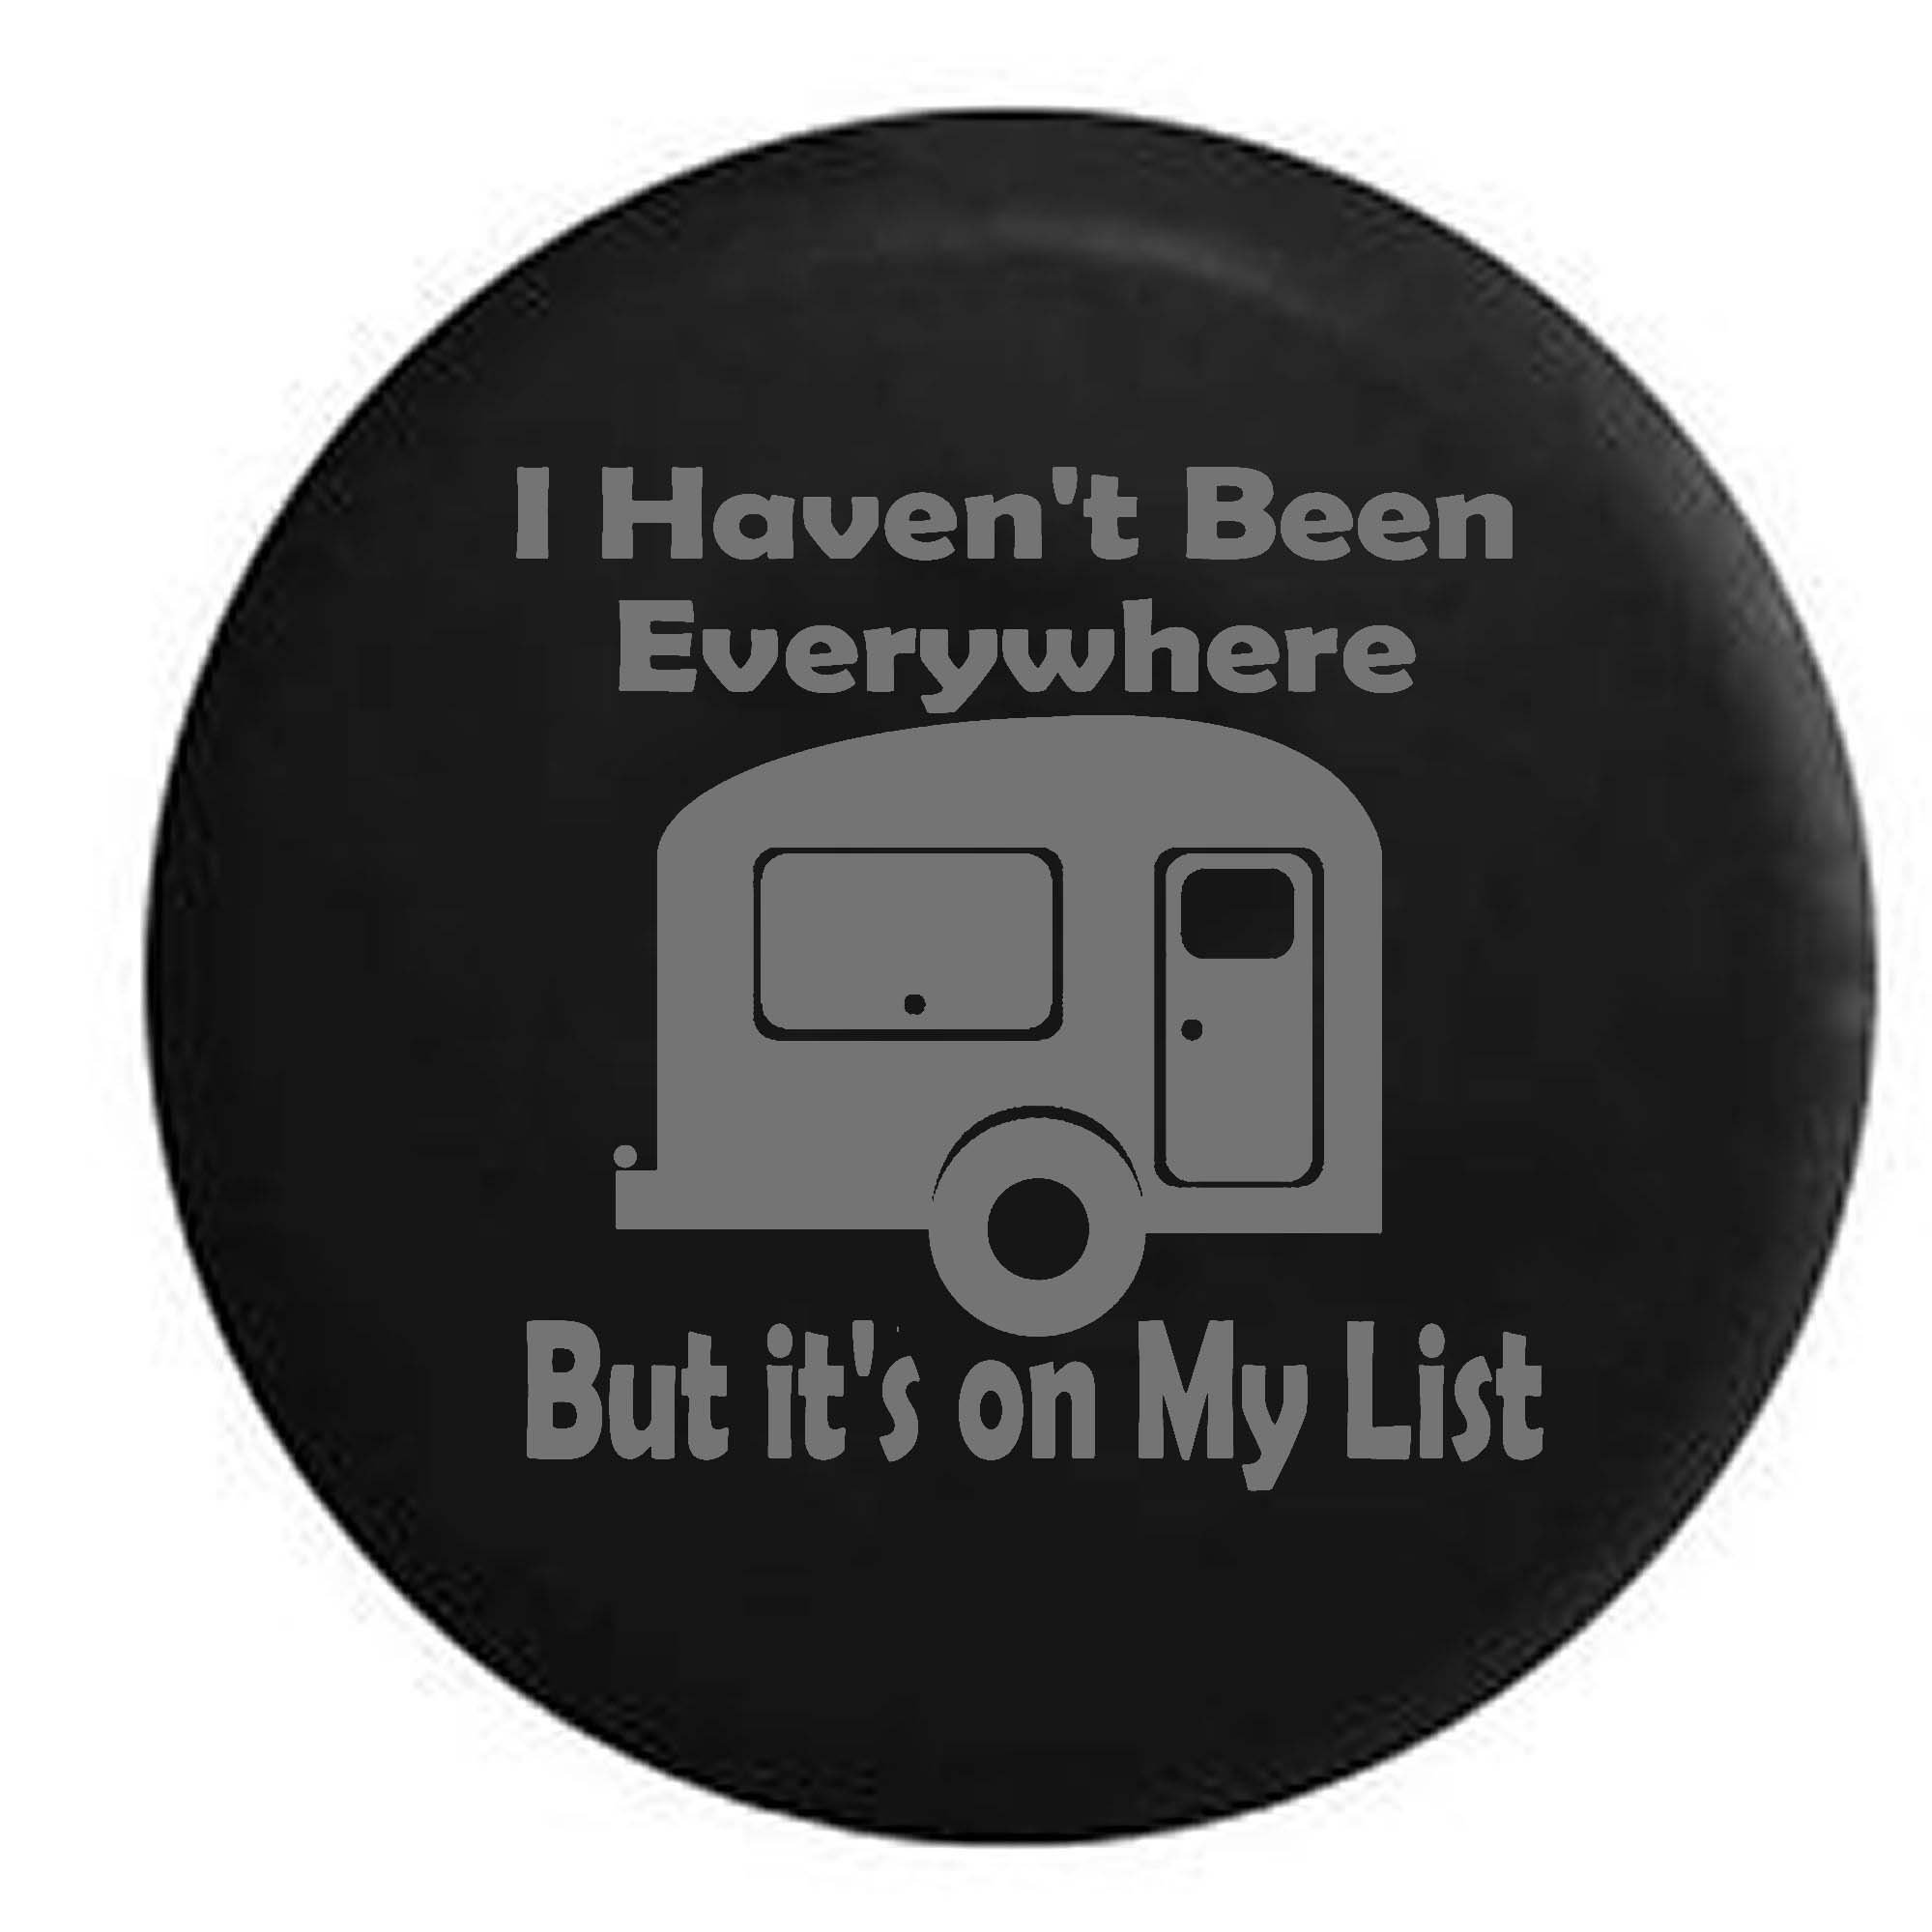 Pike Outdoors Stealth - I Haven't Been Everywhere But It's on My List Camper RV Travel Vacation Spare Tire Cover OEM Vinyl Black 32 in by Pike Outdoors